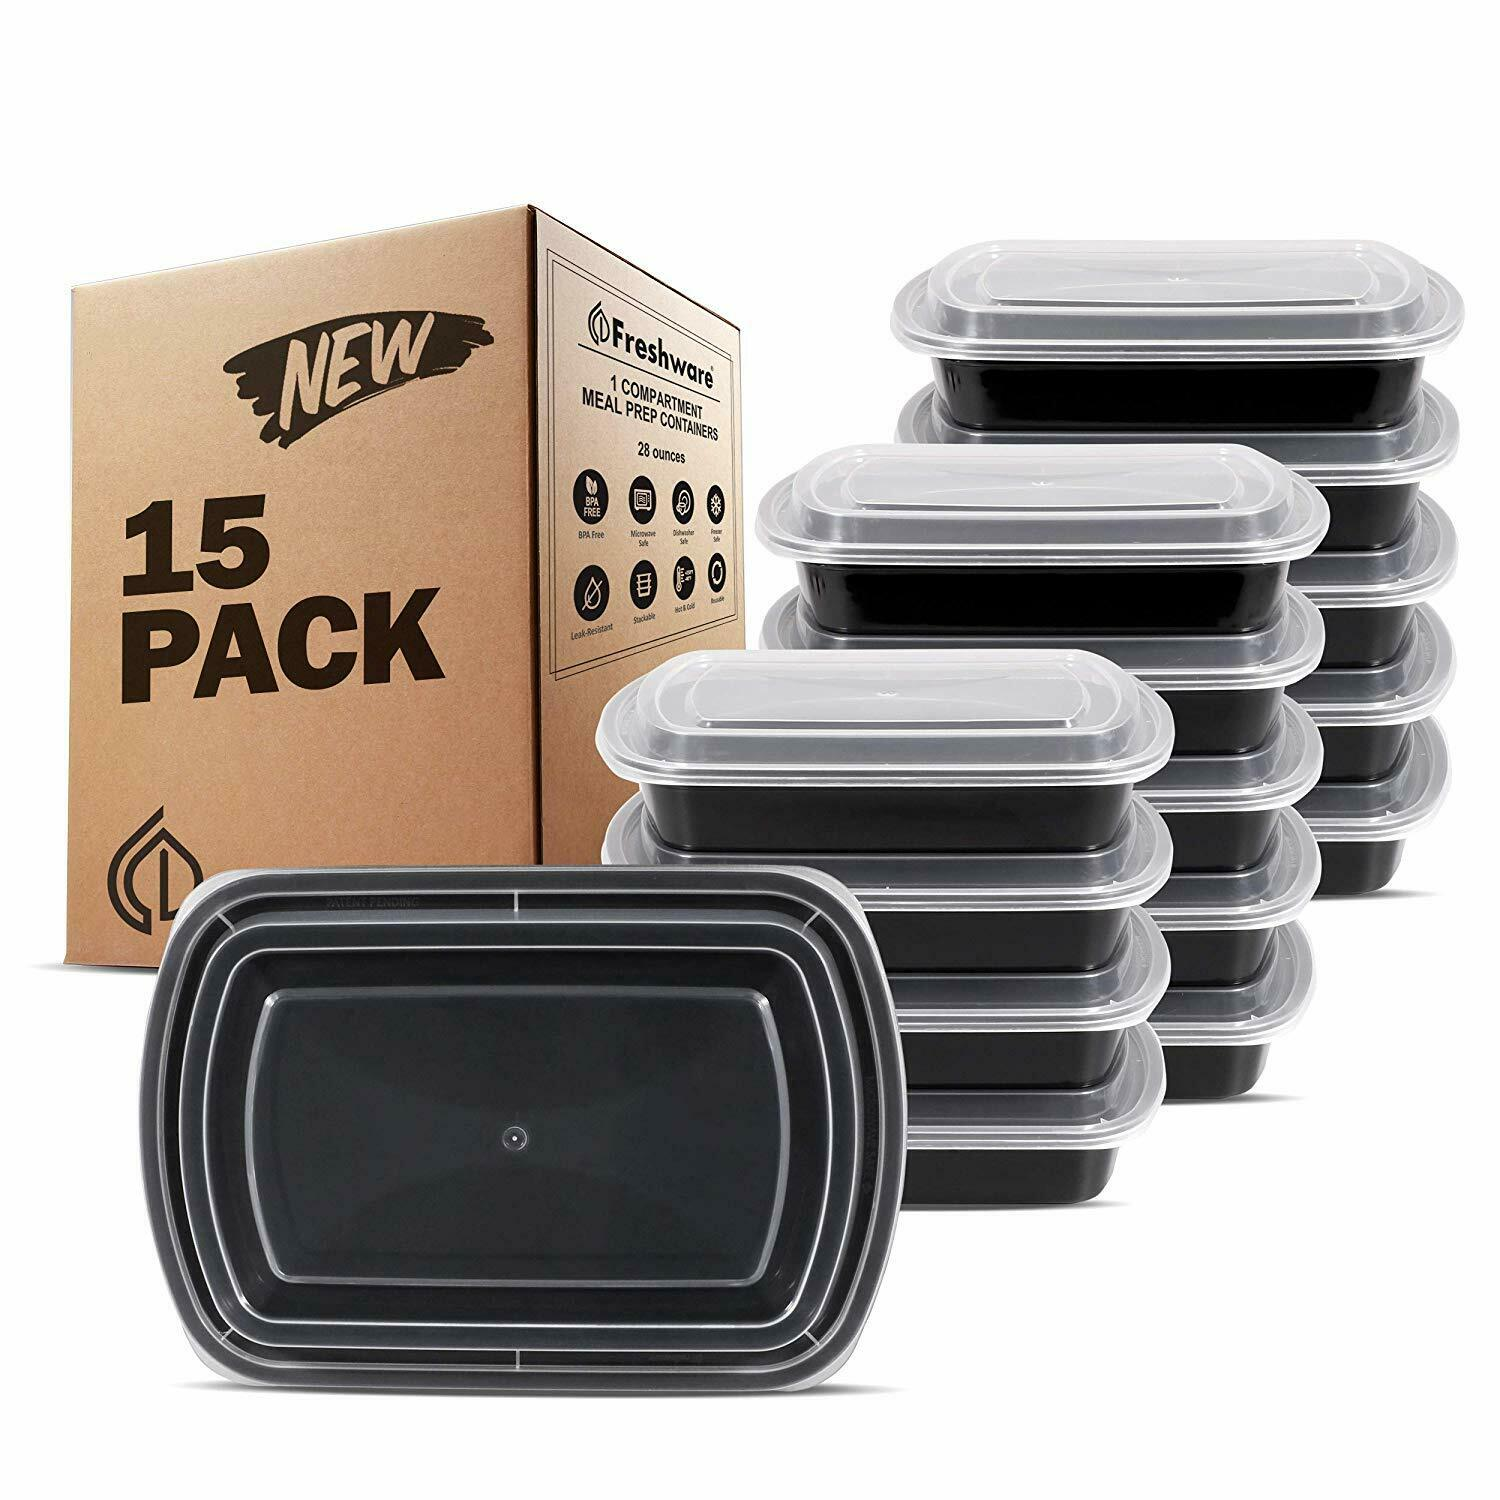 Freshware Meal Prep Containers [15 Pack] 1 Compartment with Lids, Food Storage B 1